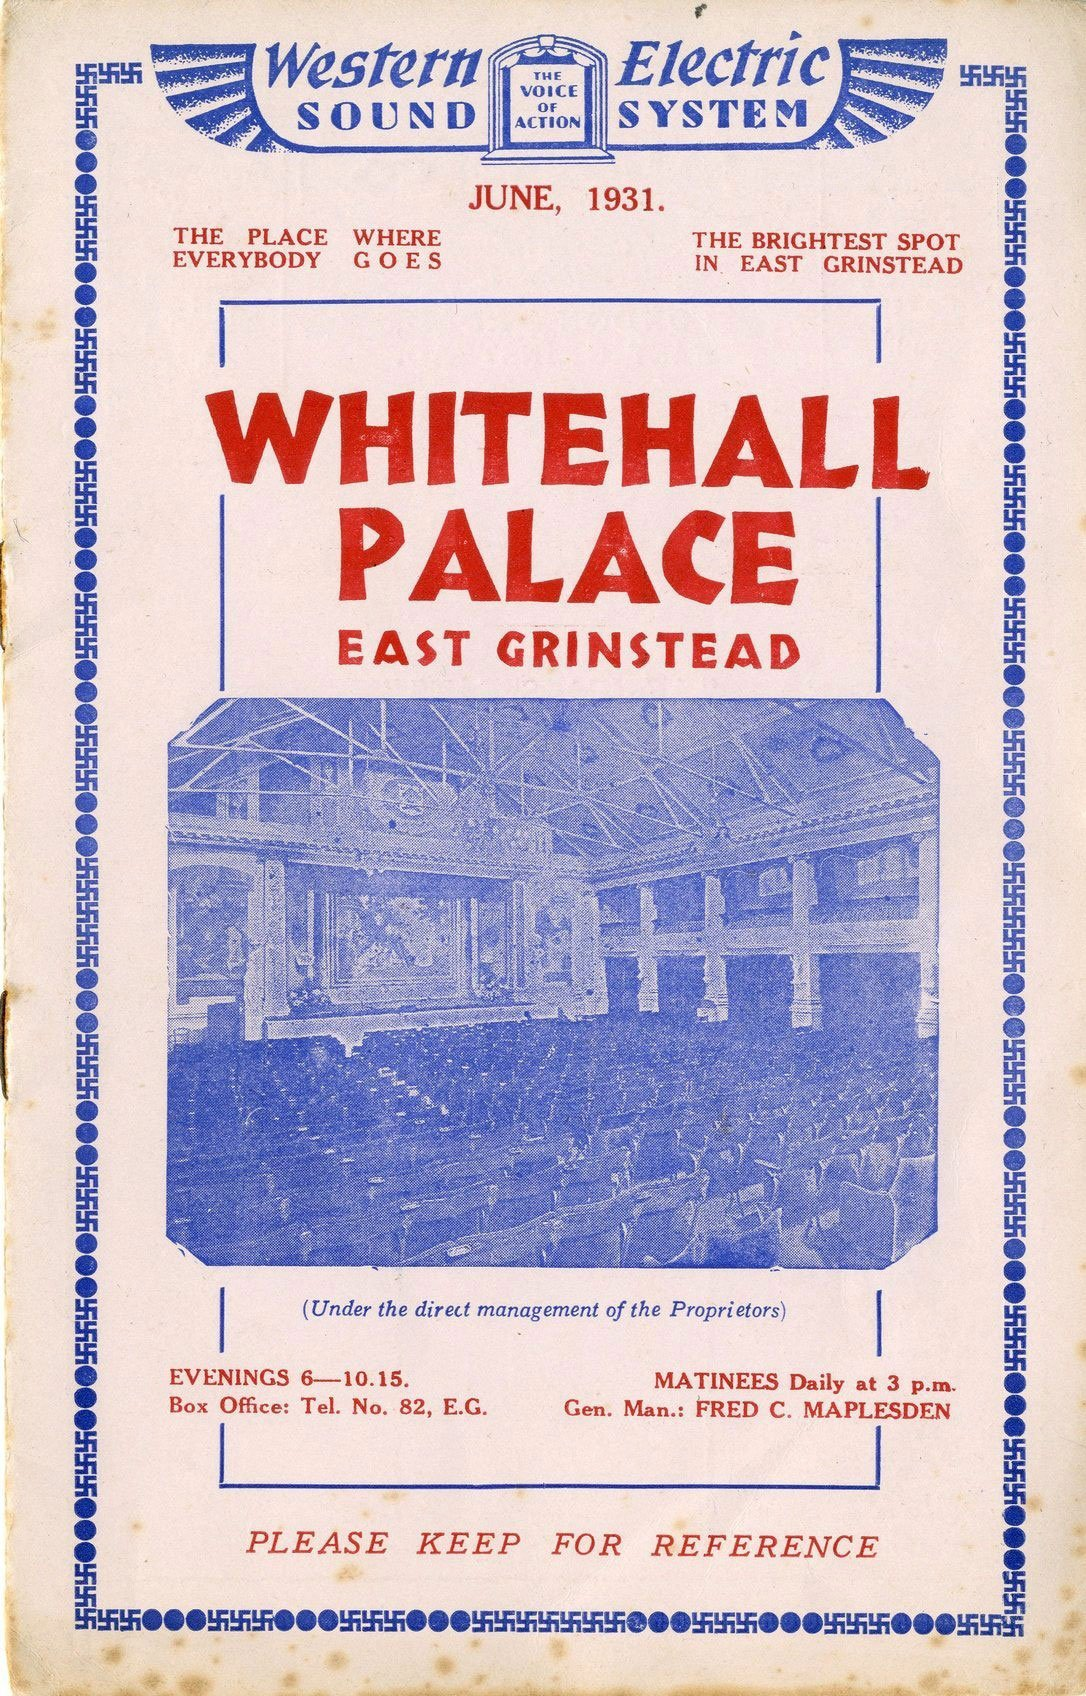 East Grinstead Museum – Whitehall Palace East Grinstead programme